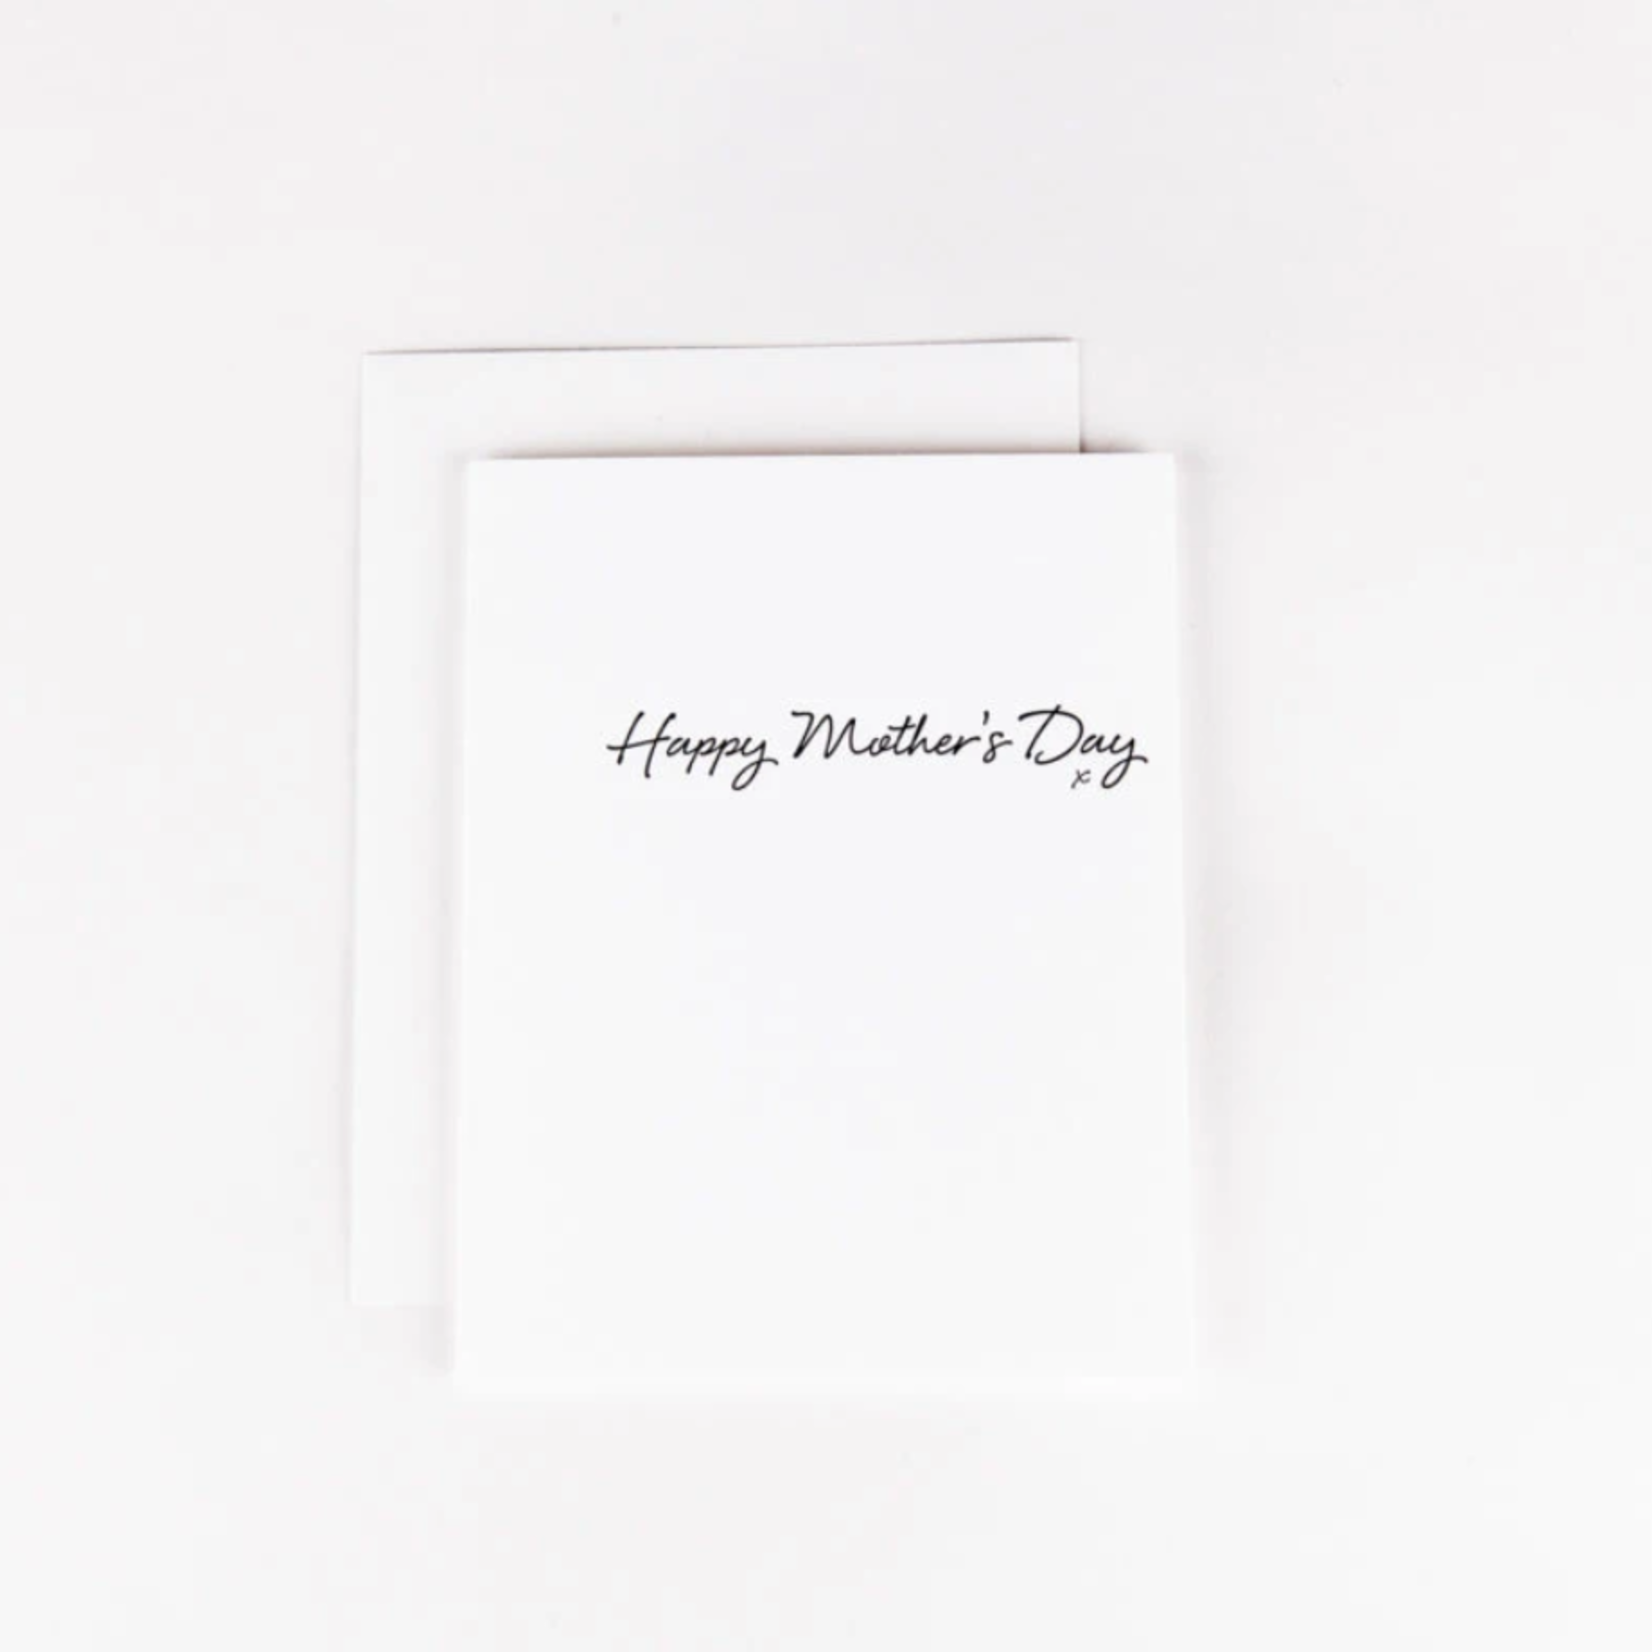 Wrinkle and Crease Happy Mother's Day card